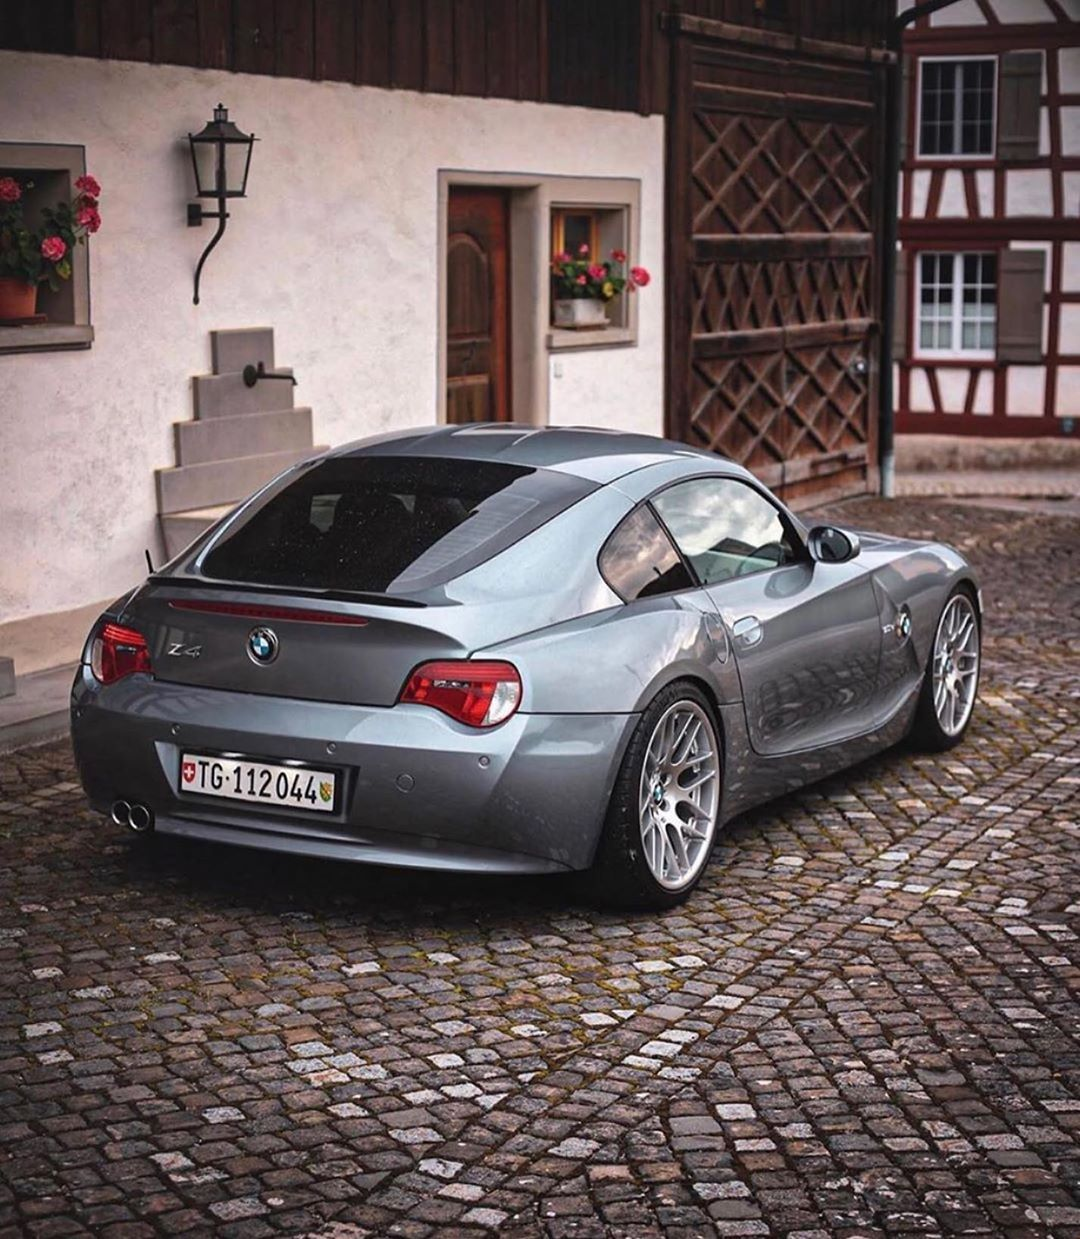 Pin By Cars Zone On Bmw In 2020 Bmw Bmw Z4 Coupe Bmw Coupe